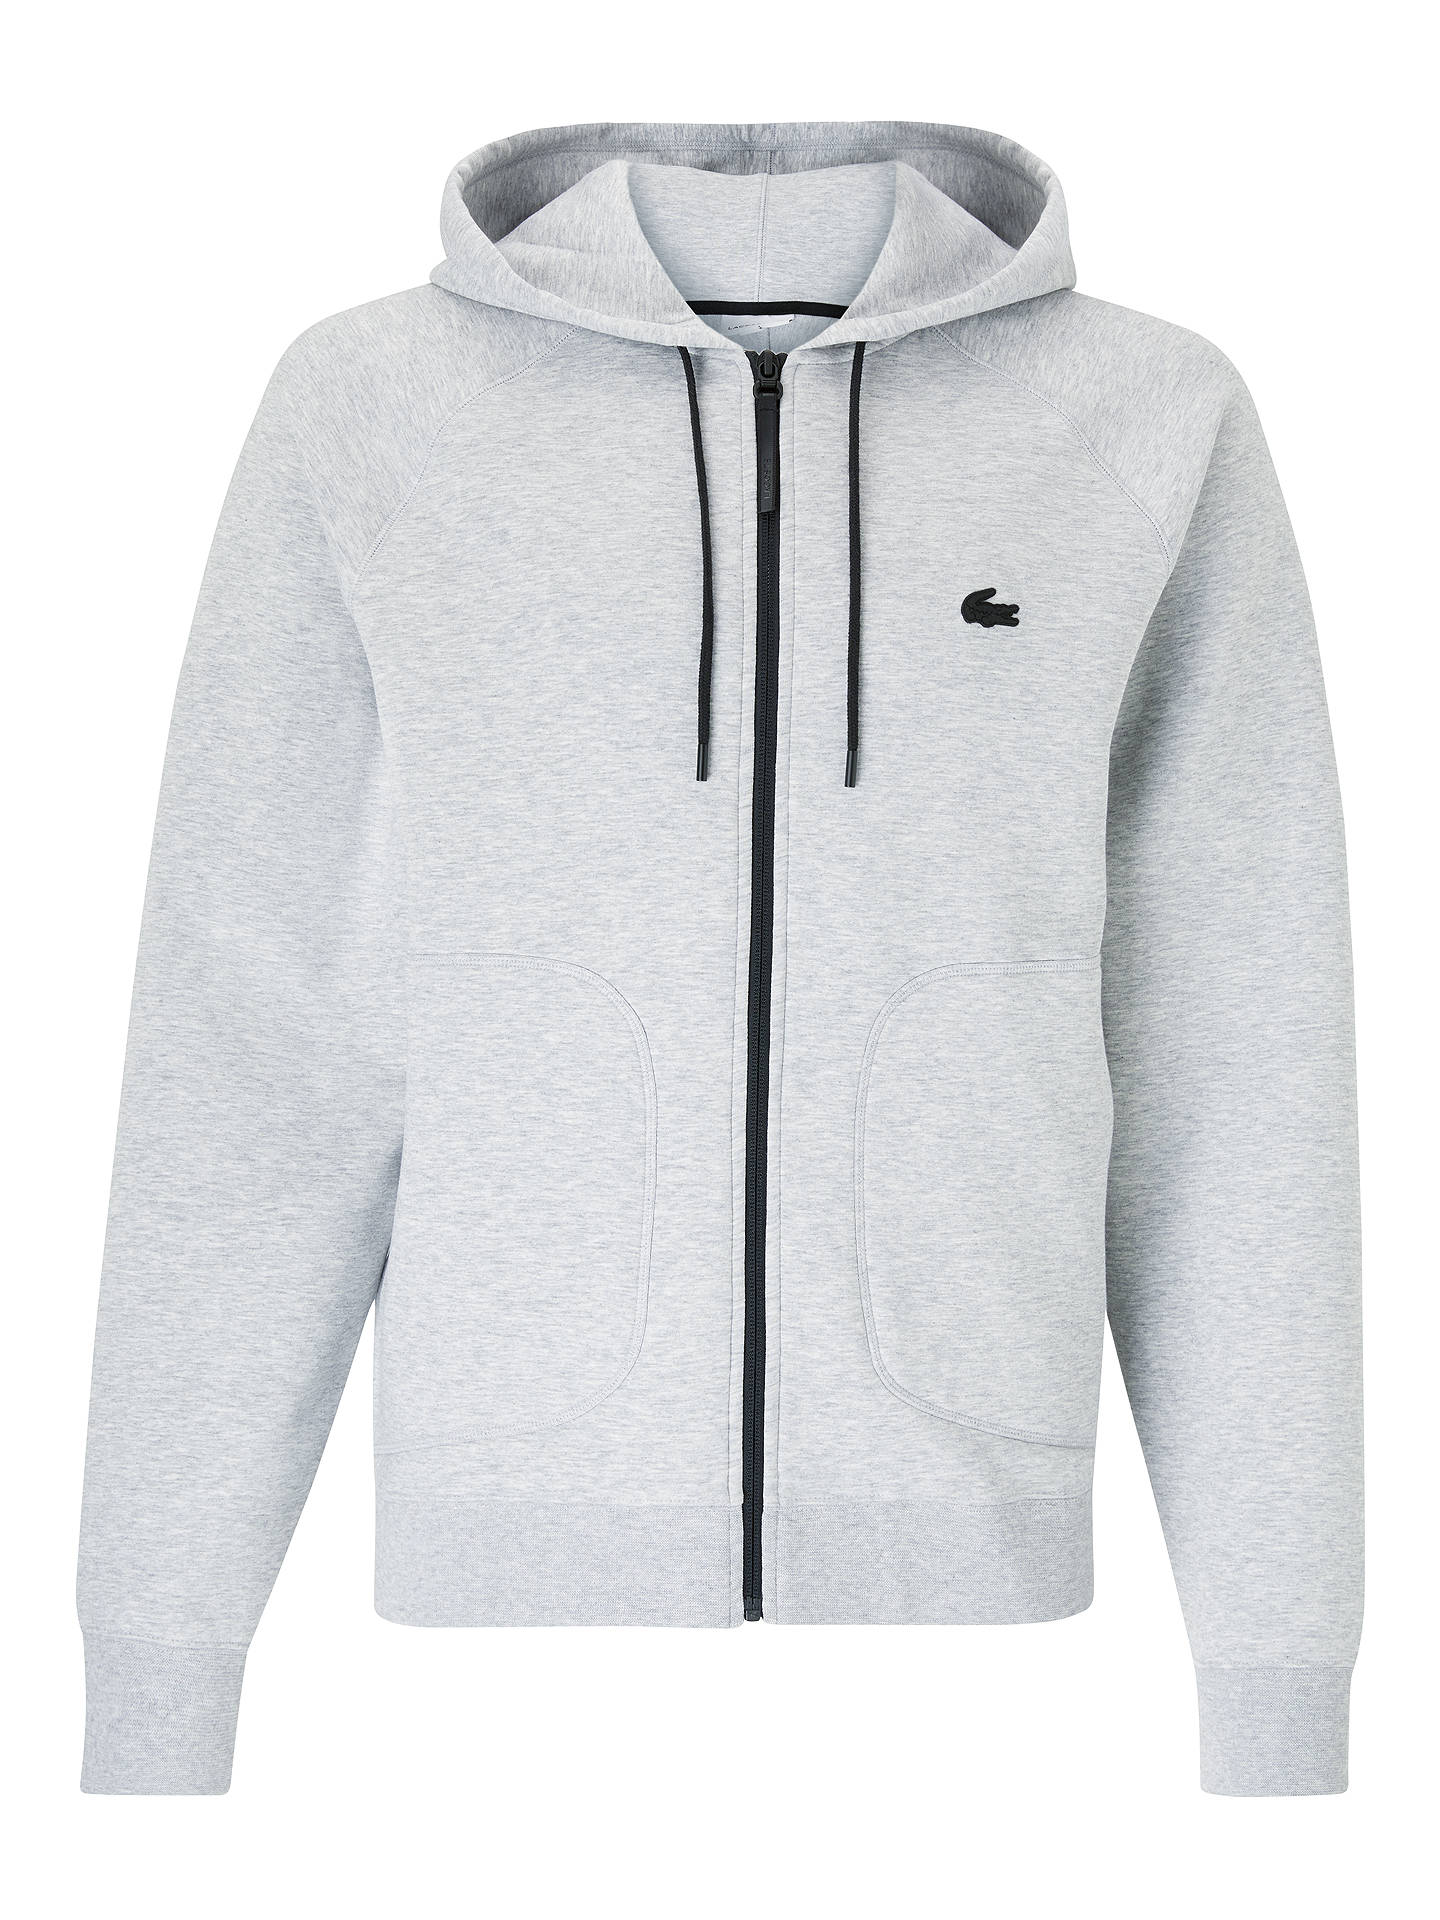 hot sale new authentic arriving Lacoste in Motion Tracksuit Hoodie, Grey at John Lewis ...